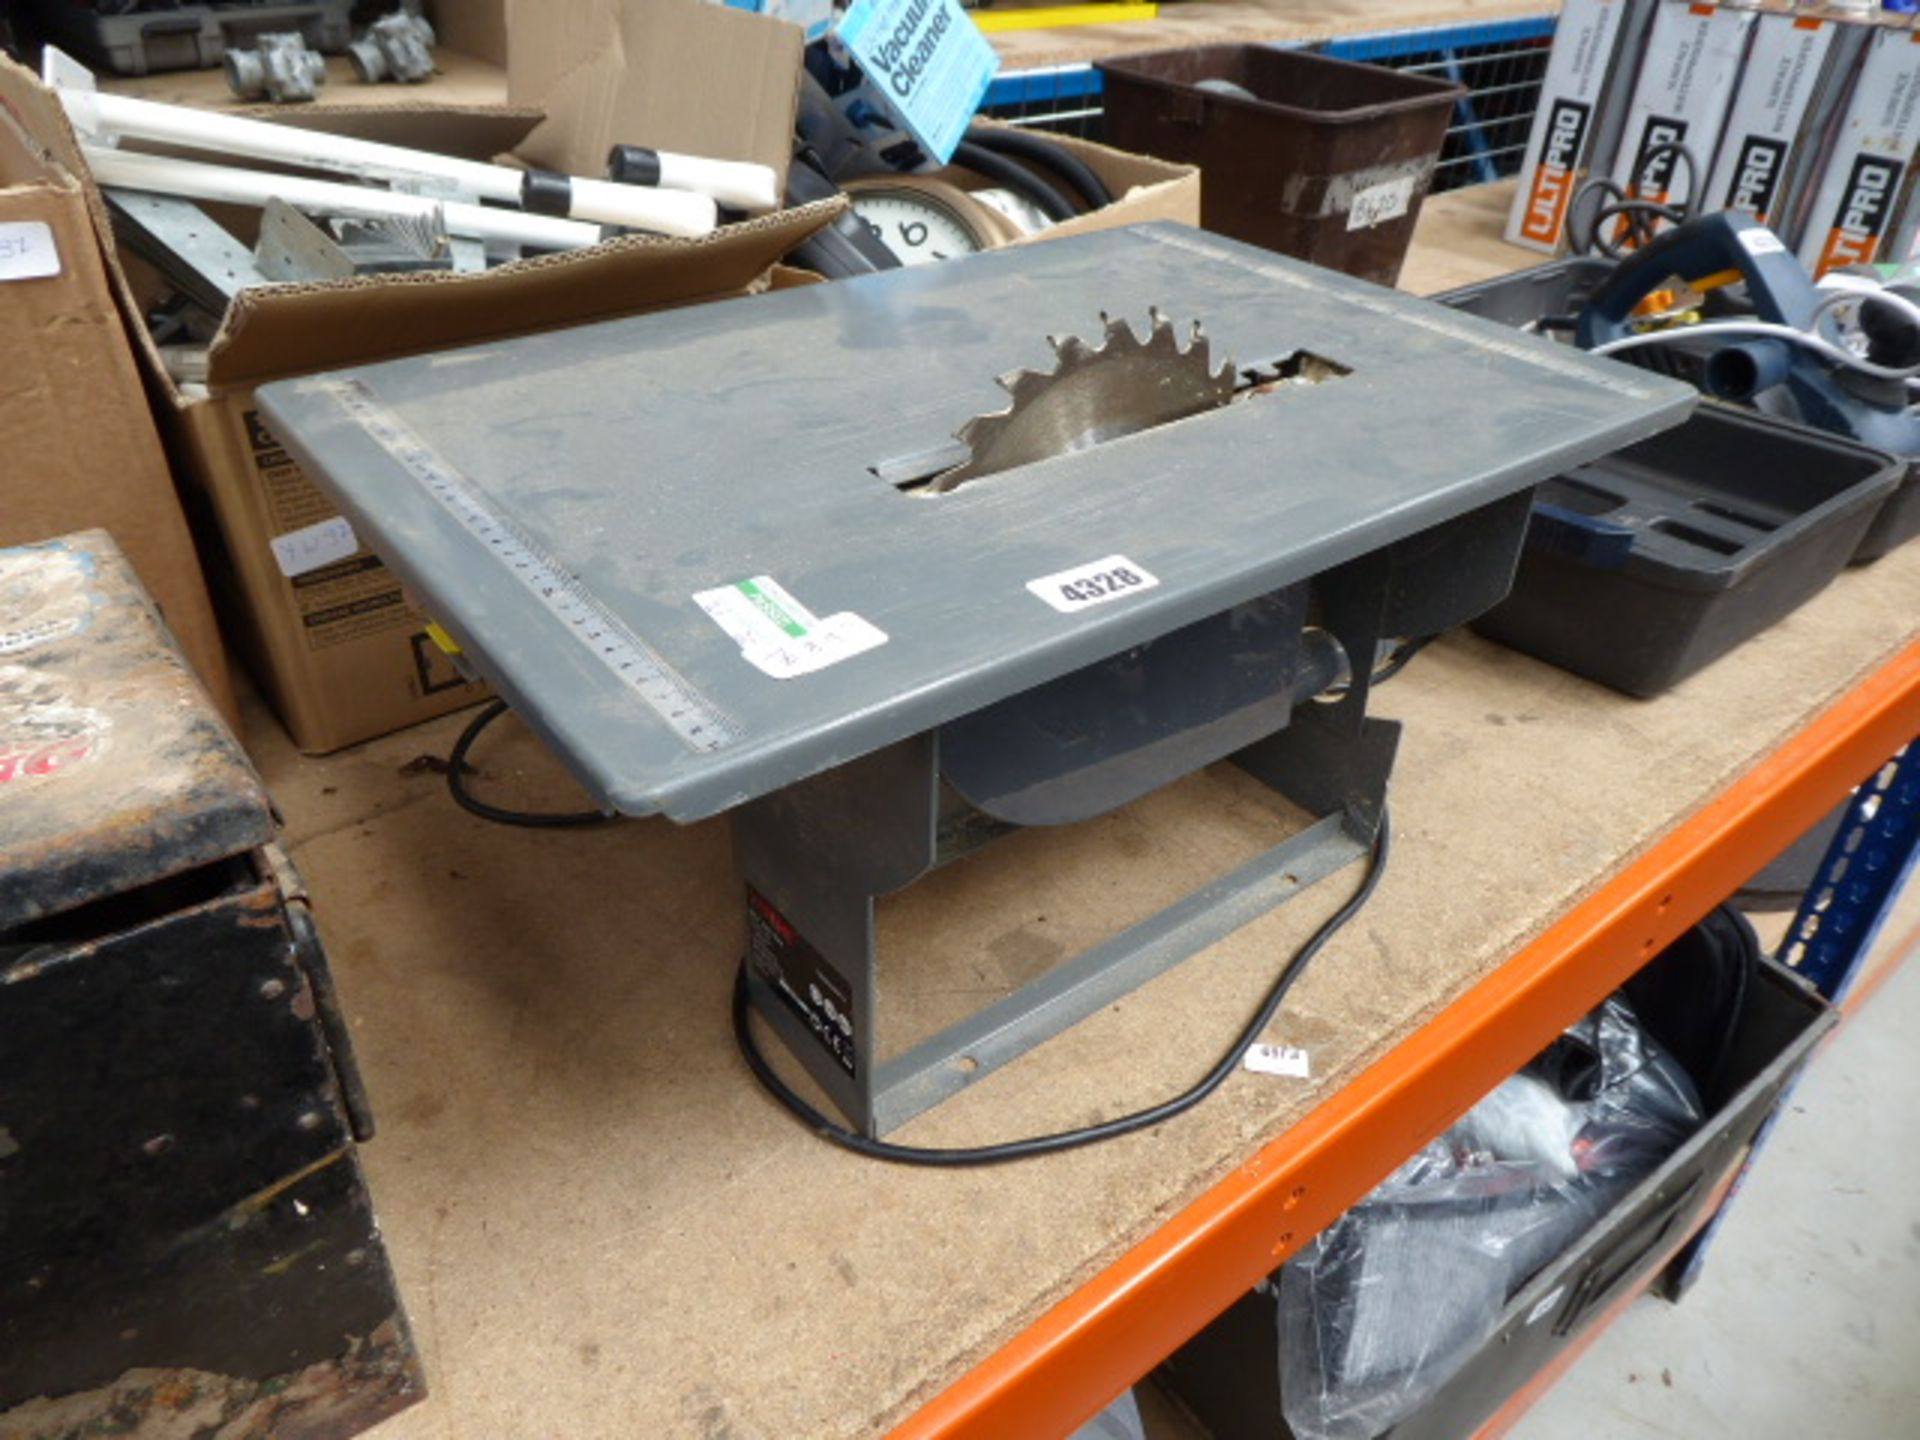 Lot 4328 - Small woodworking saw bench